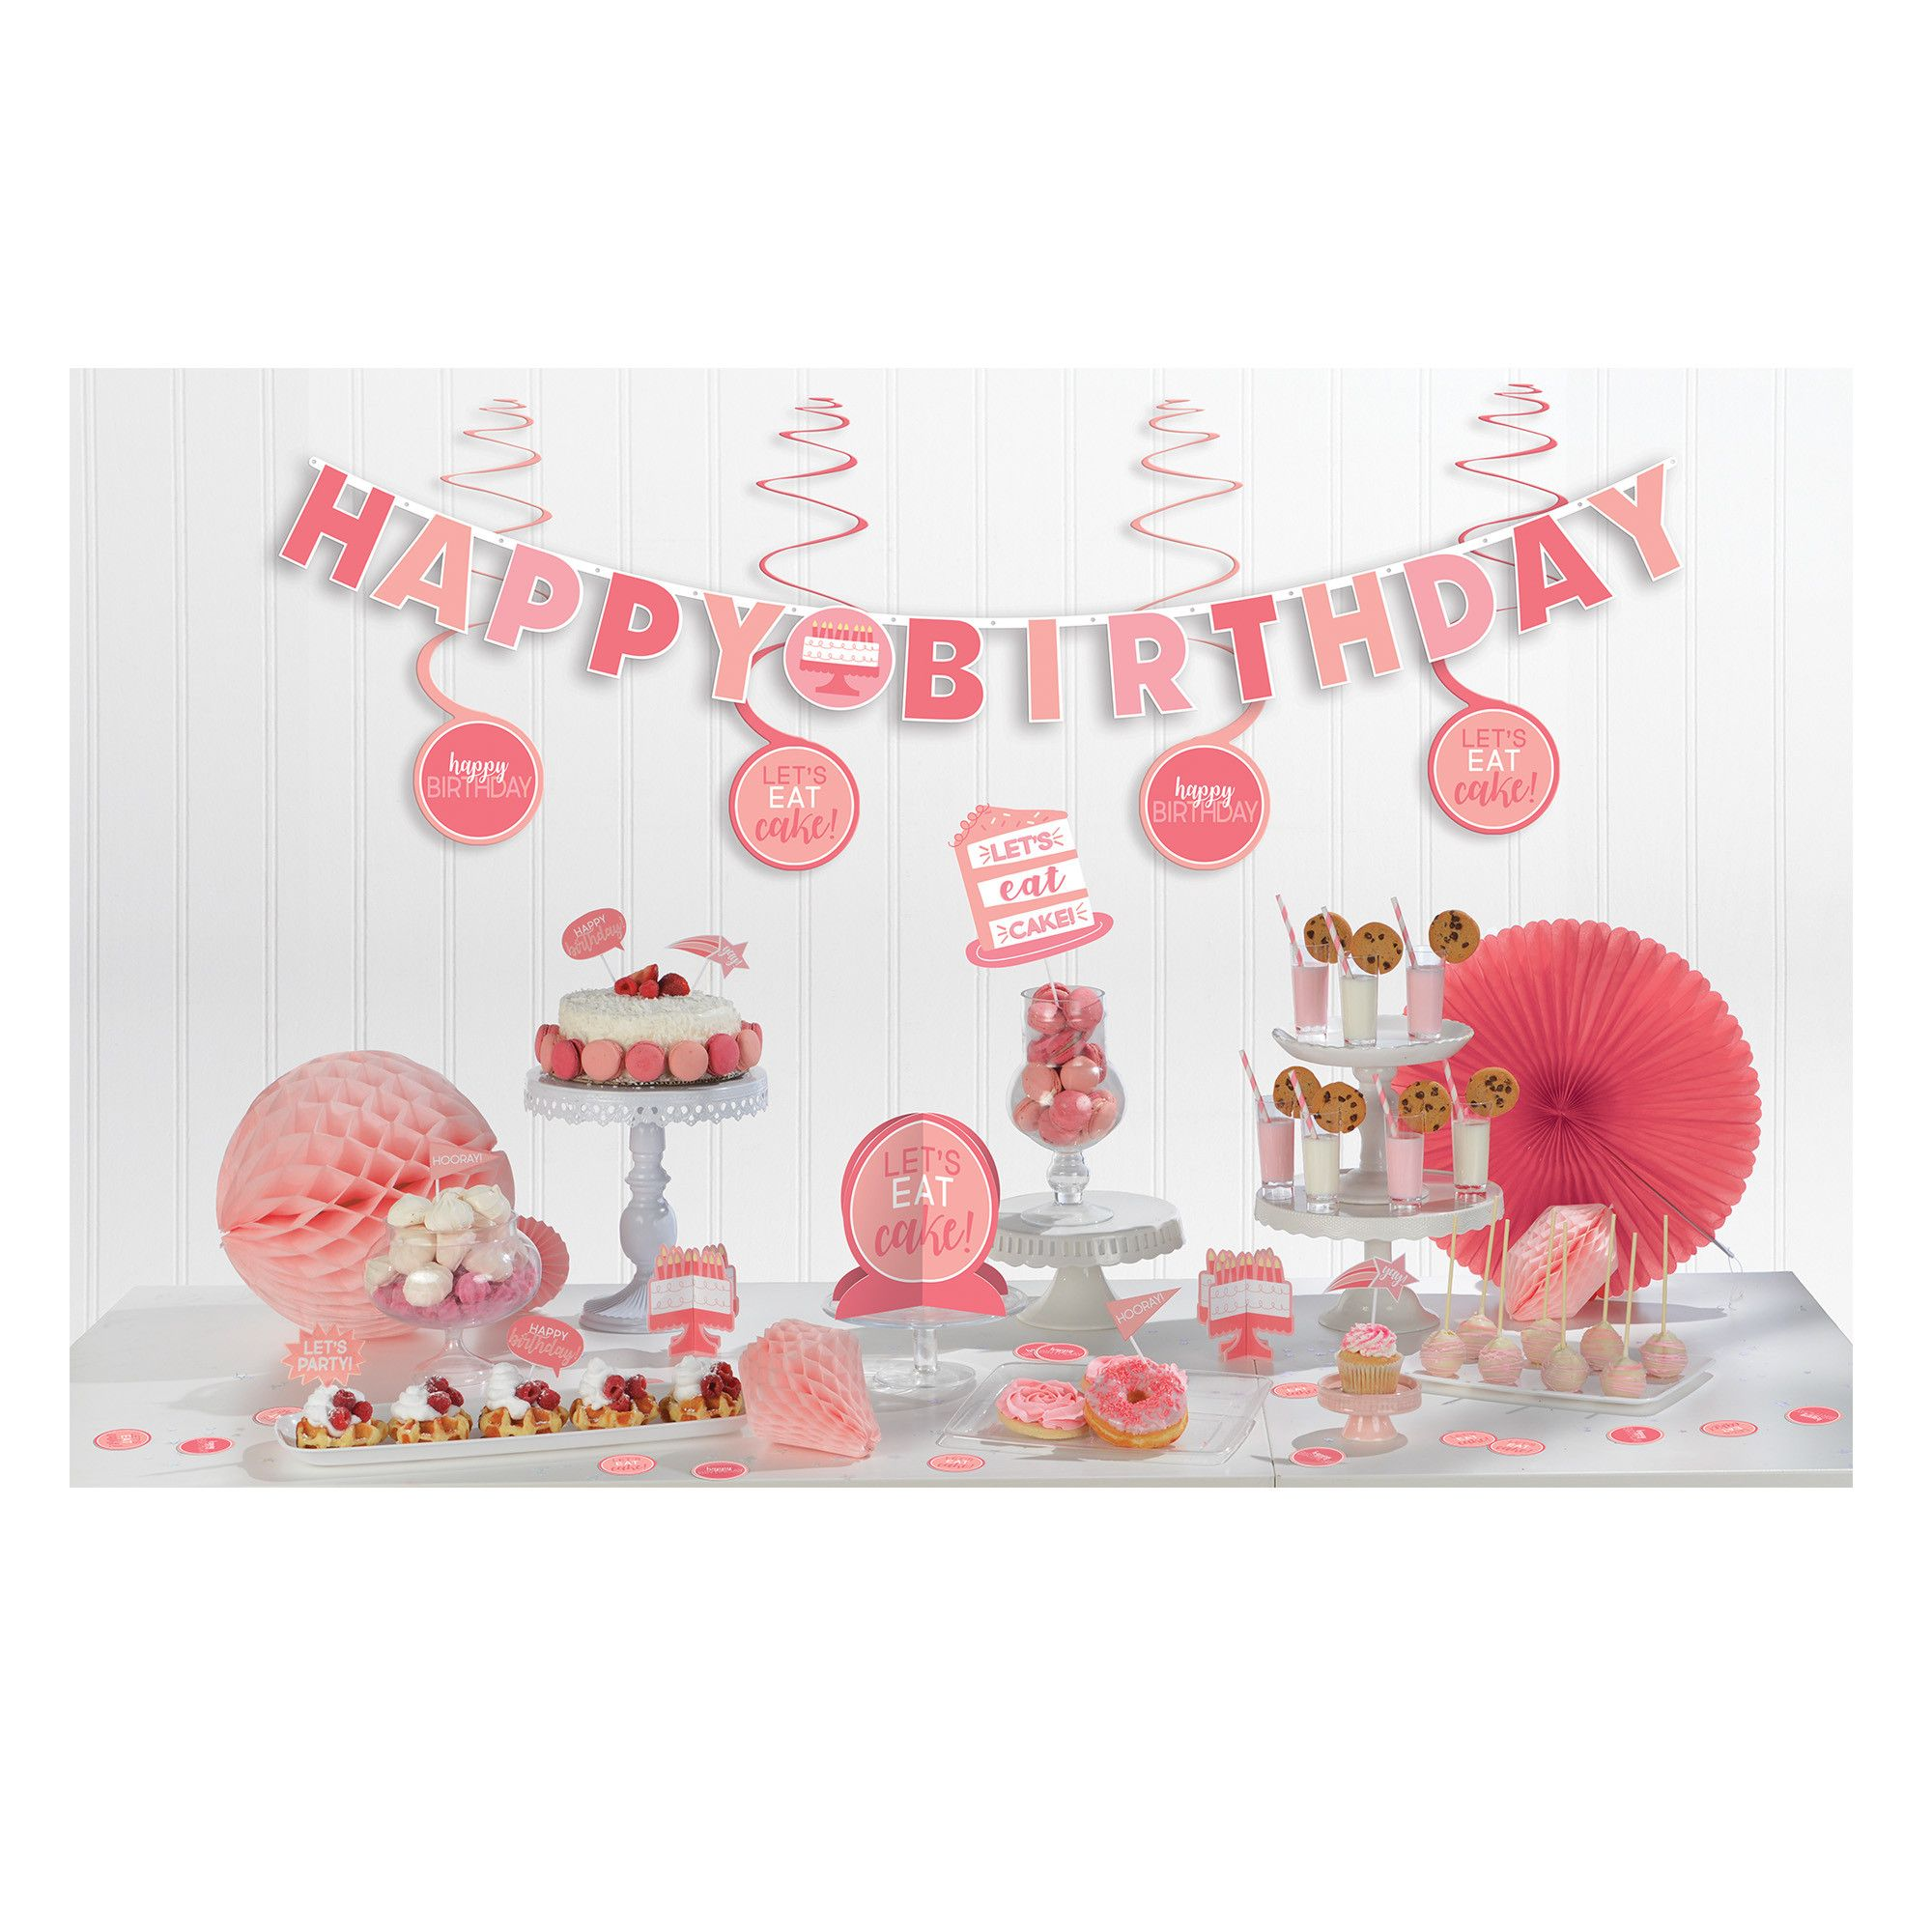 Bday Access Pinks Mini Deco Kit